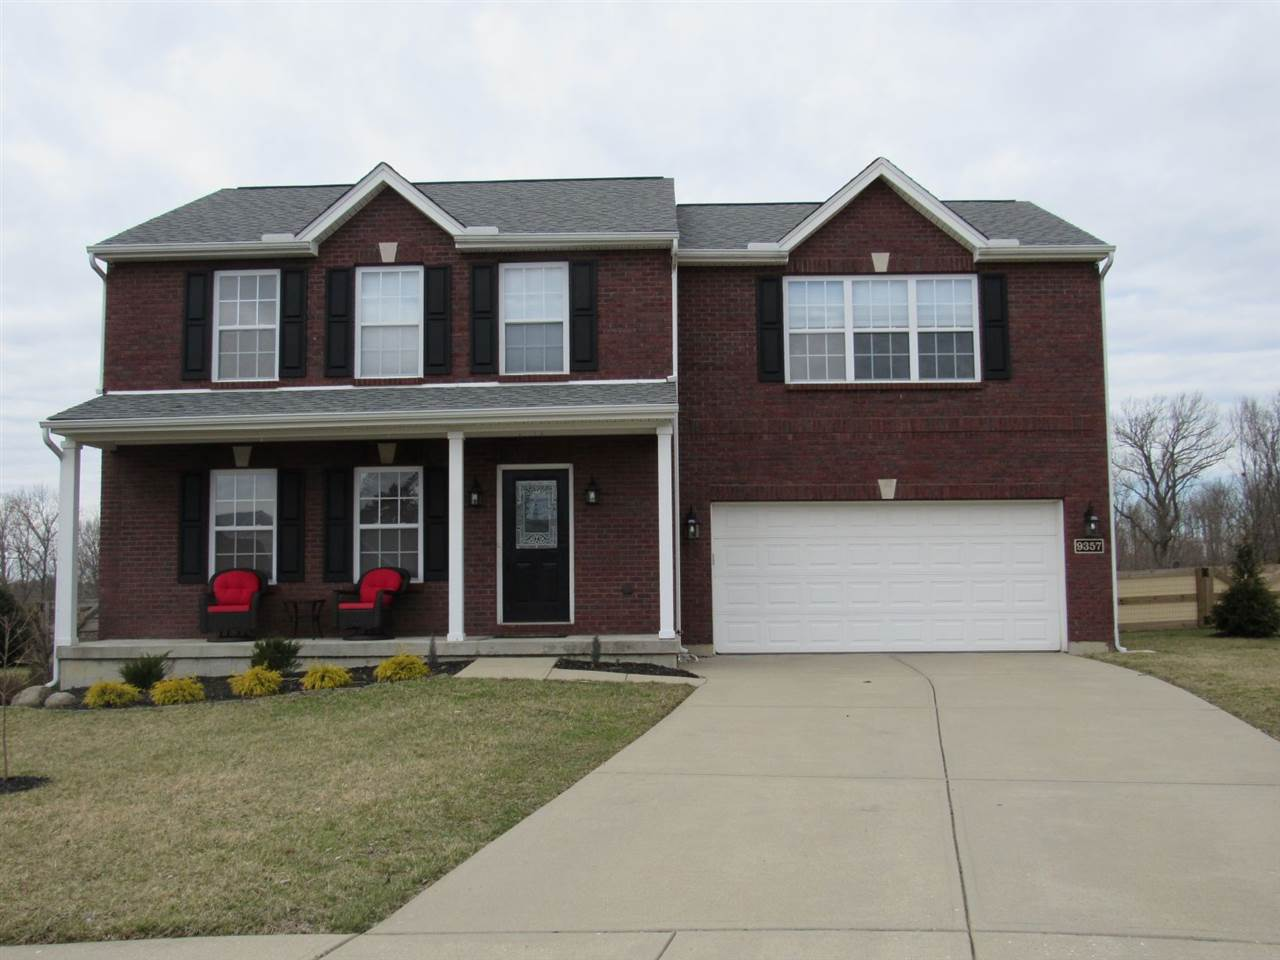 9357 Lago Mar Ct Florence, KY